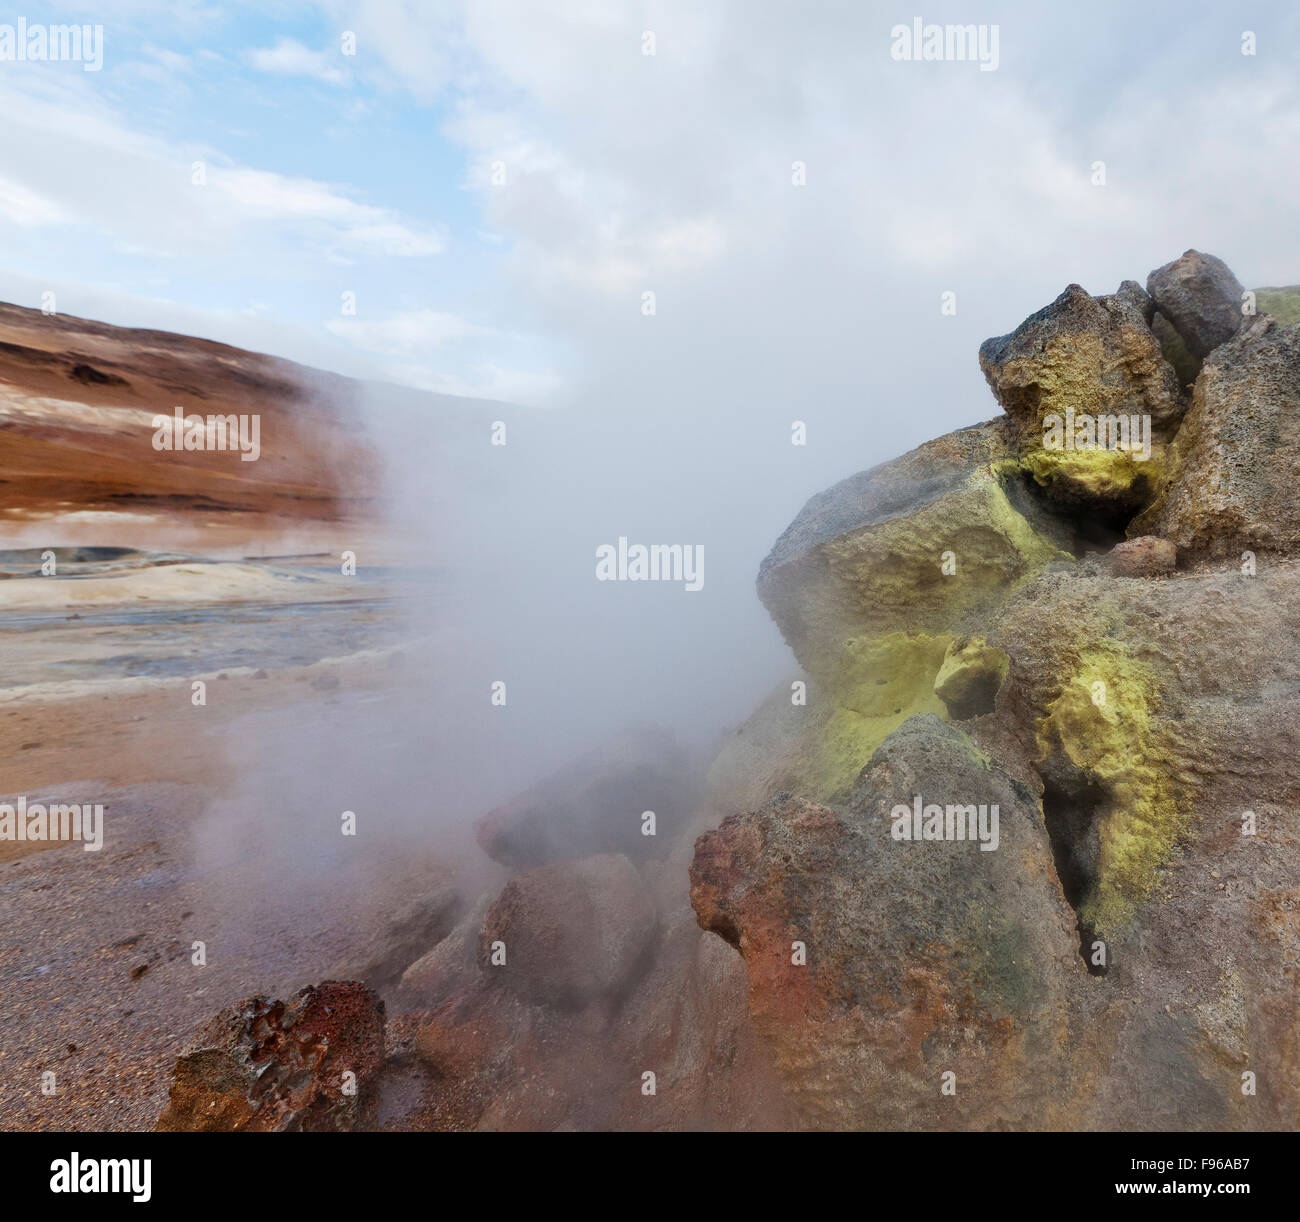 Geothermal hot springs, Hverarond, Namaskard, Iceland. The area is characterized by boiling mud-bogs and solfataras. Stock Photo